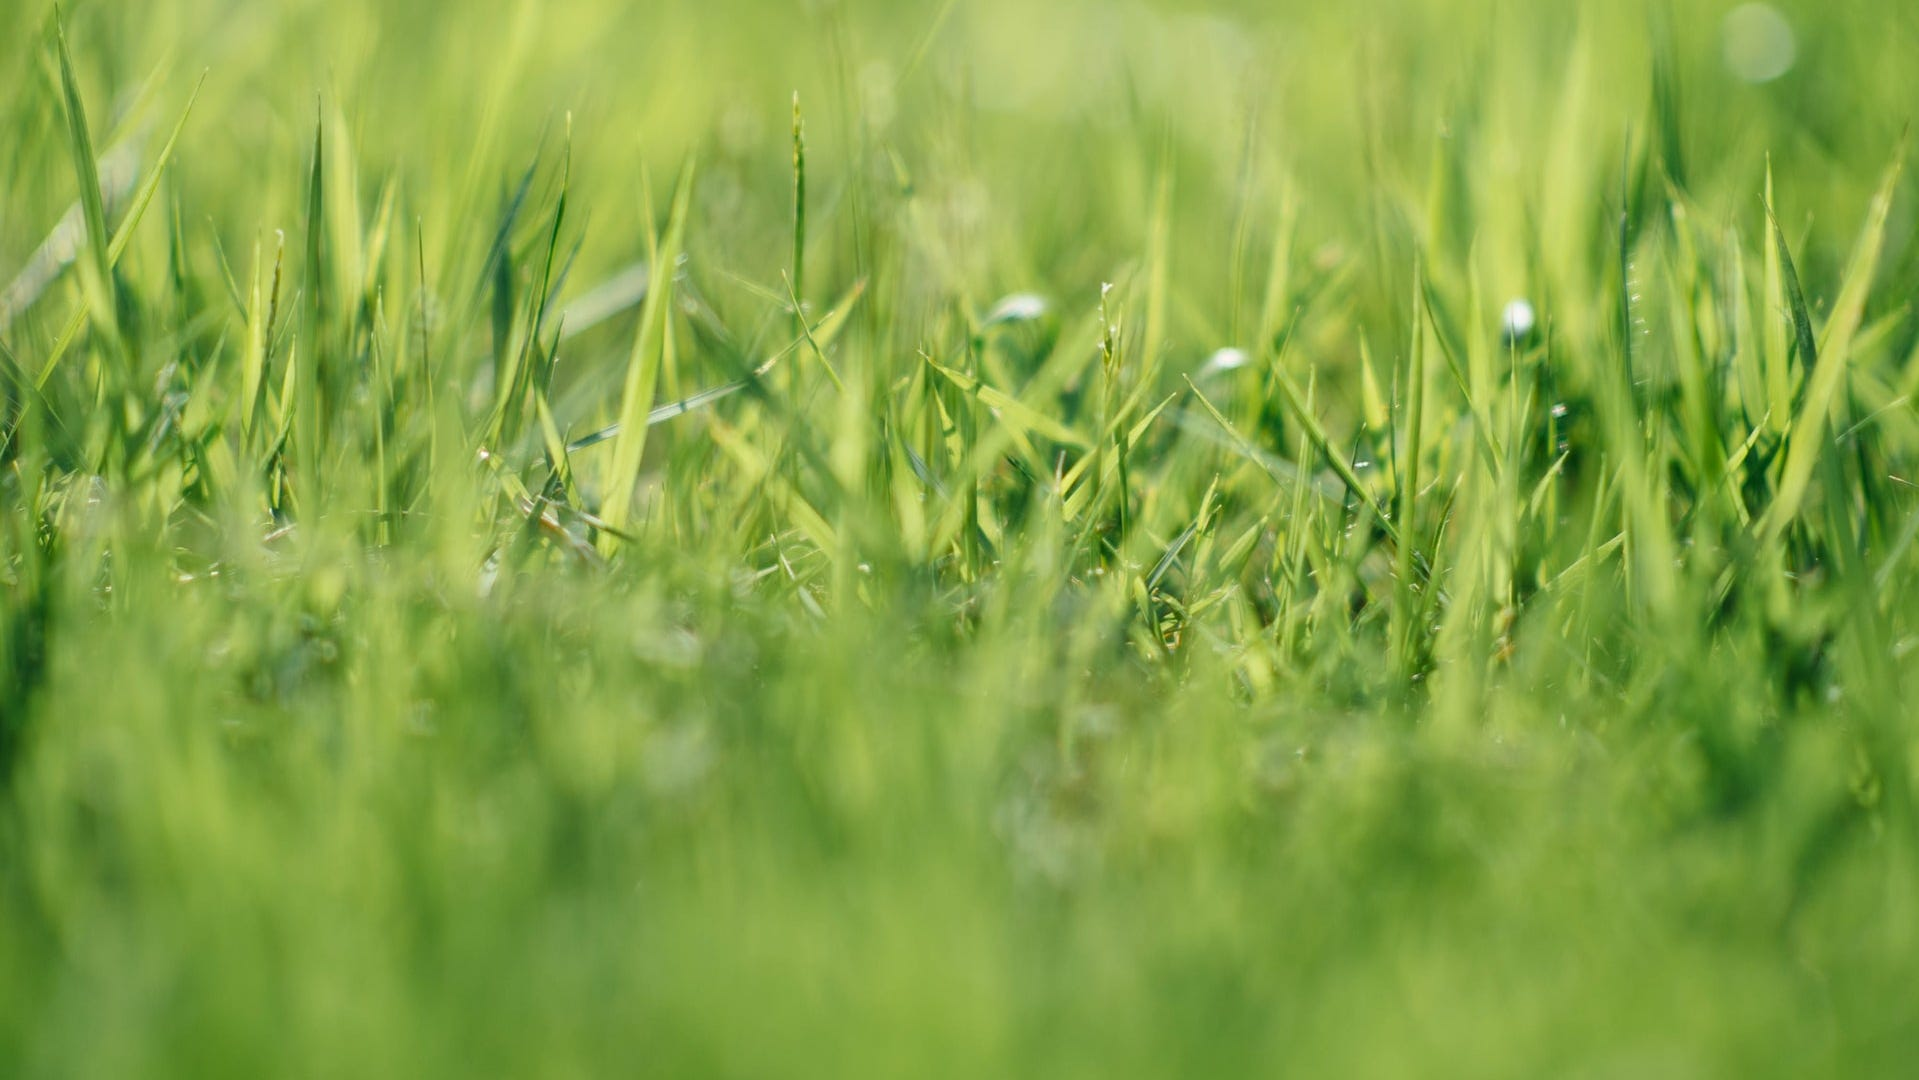 Getgrassy.org has information to help you keep your lawn healthy all year long.